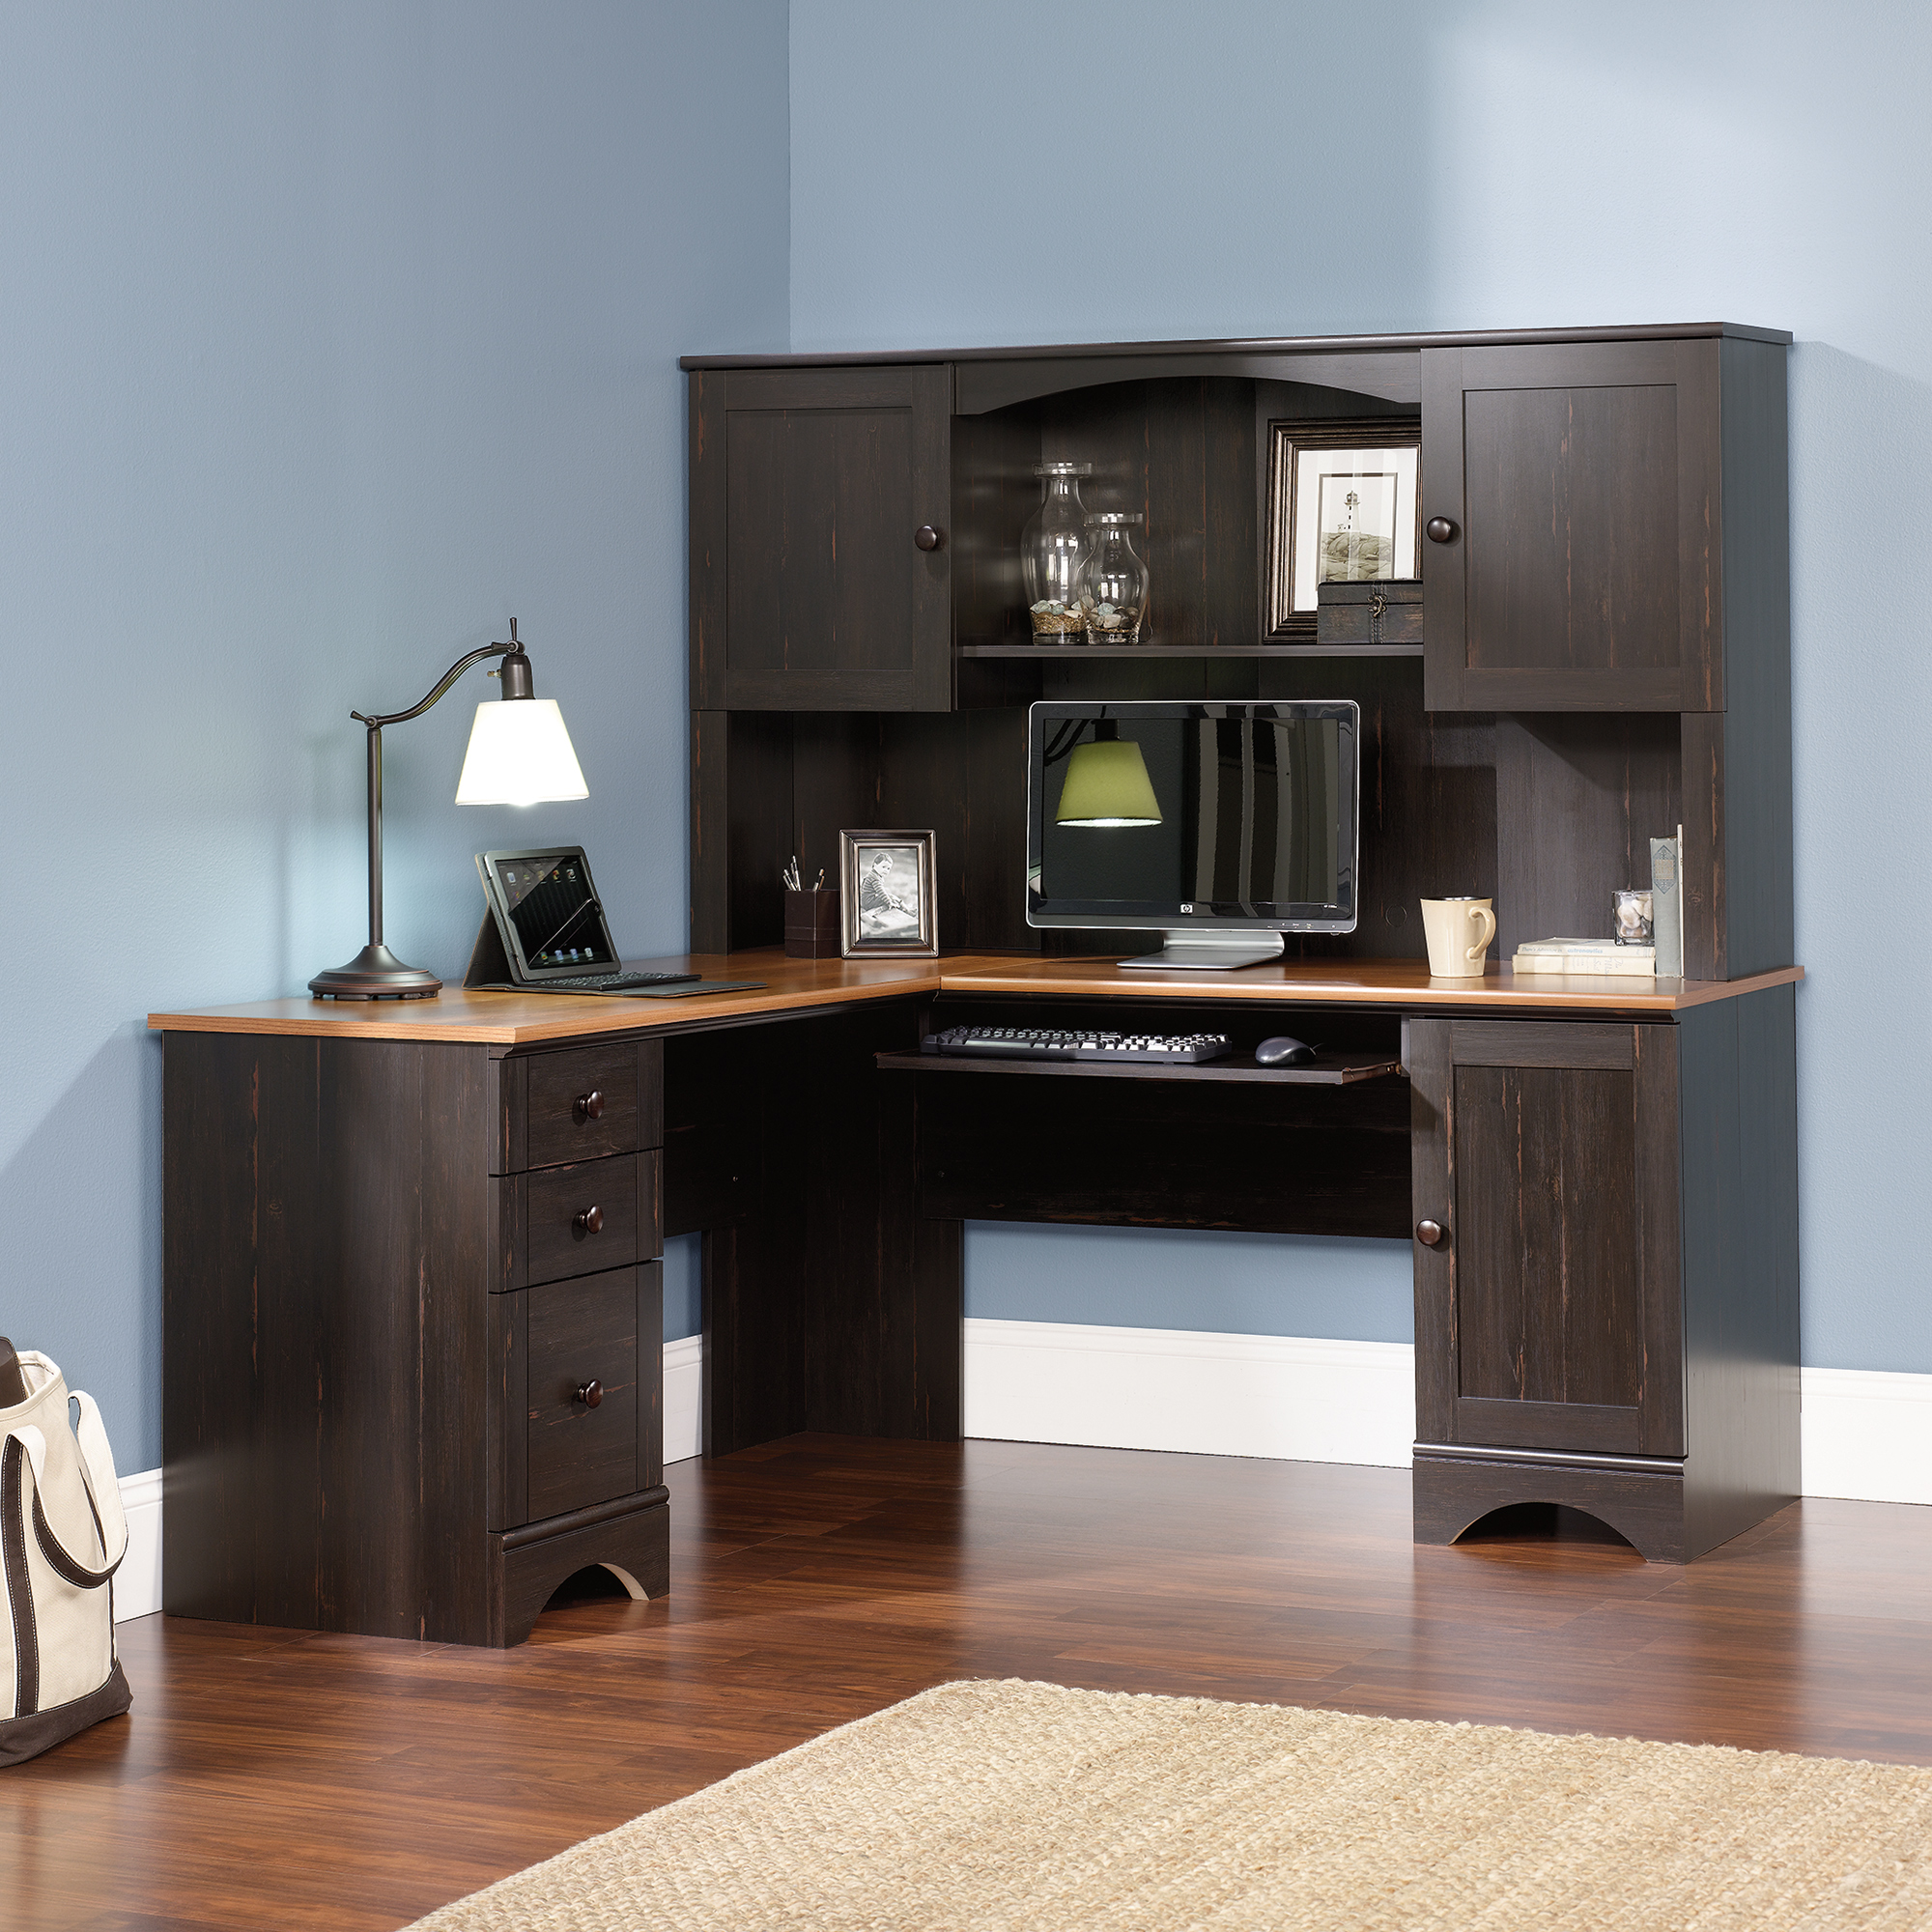 Sauder Harbor View Computer Desk with Hutch Antiqued Paint | Sauder Computer Desks | Hutch Computer Desk